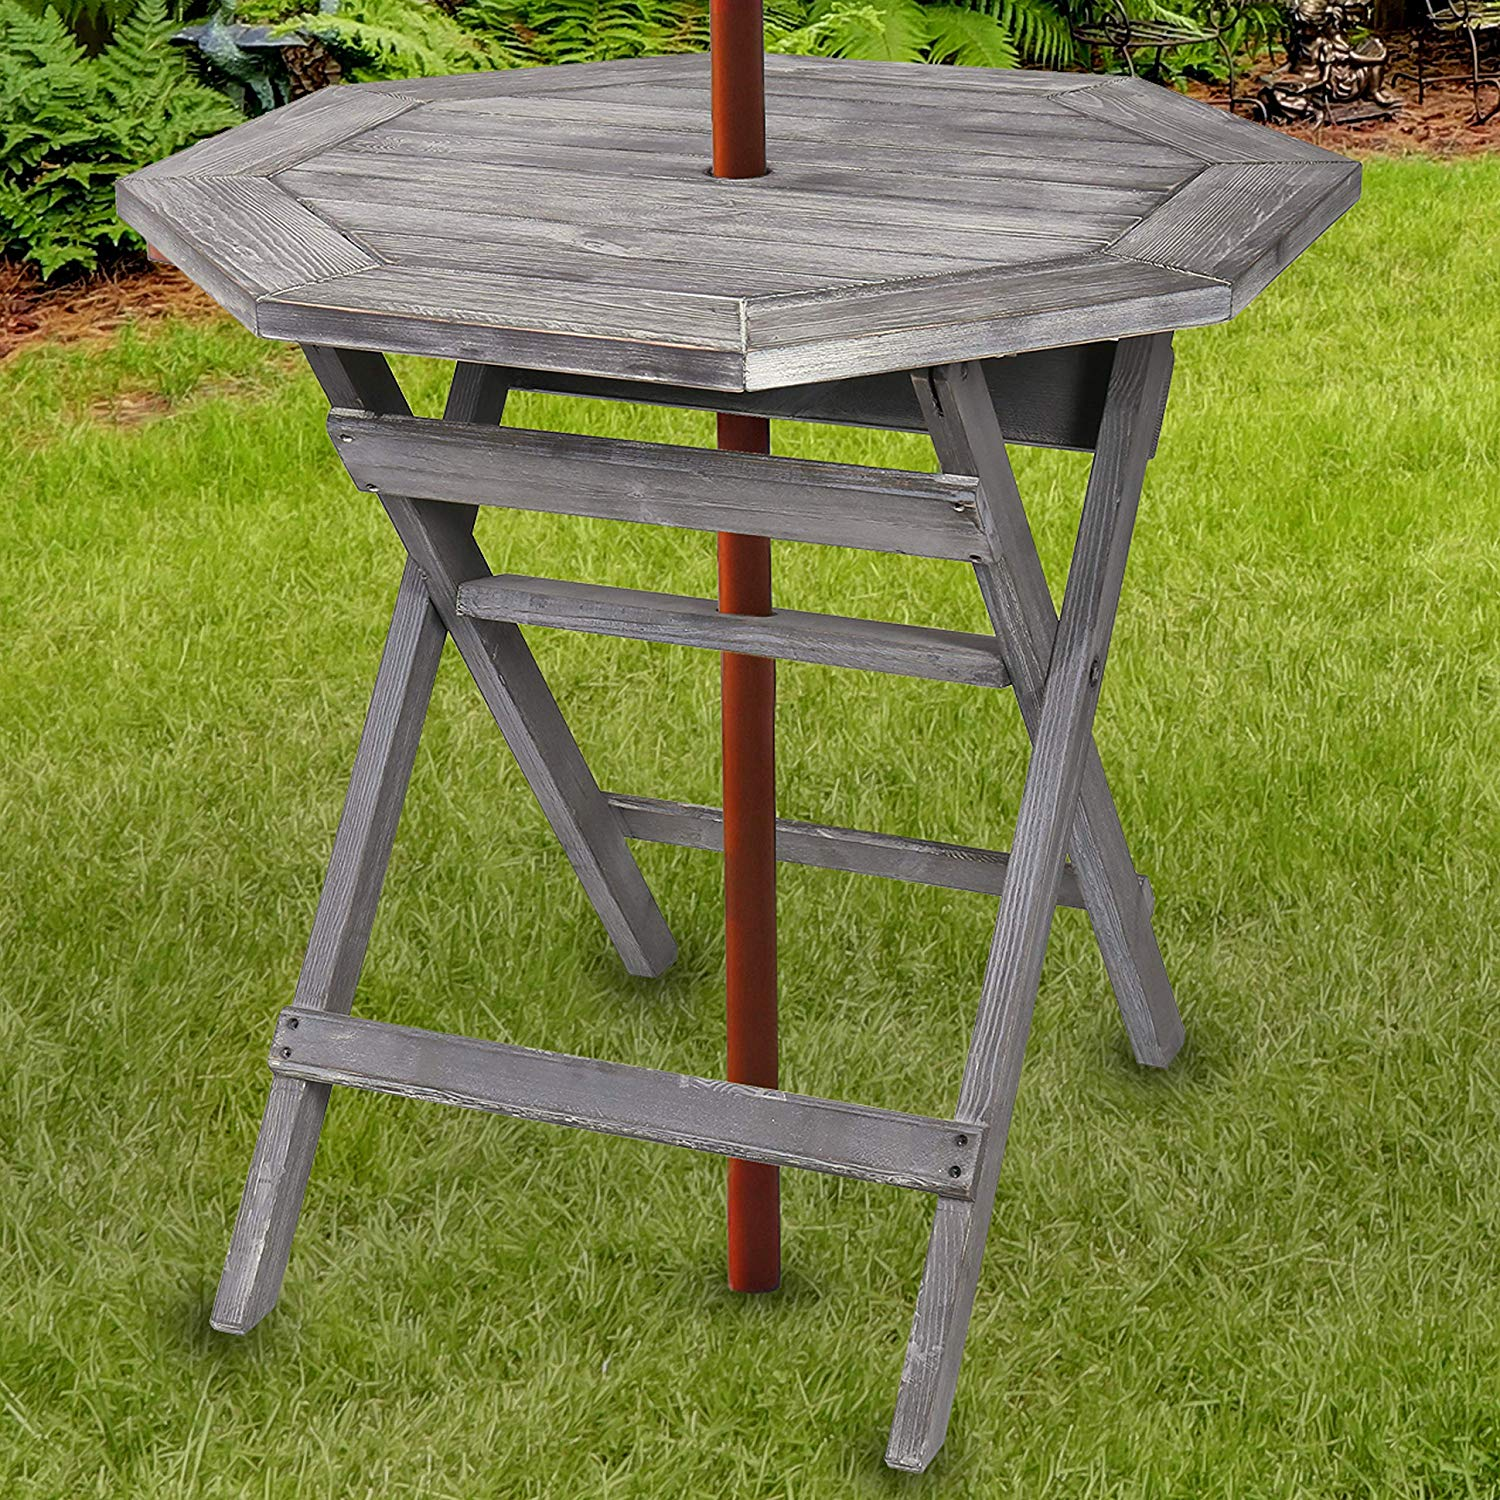 rustic barnwood gray pine wood folding octagonal inch patio umbrella accent table bistro with hole garden outdoor home goods chairs woven furniture gold runner mirrored tray end